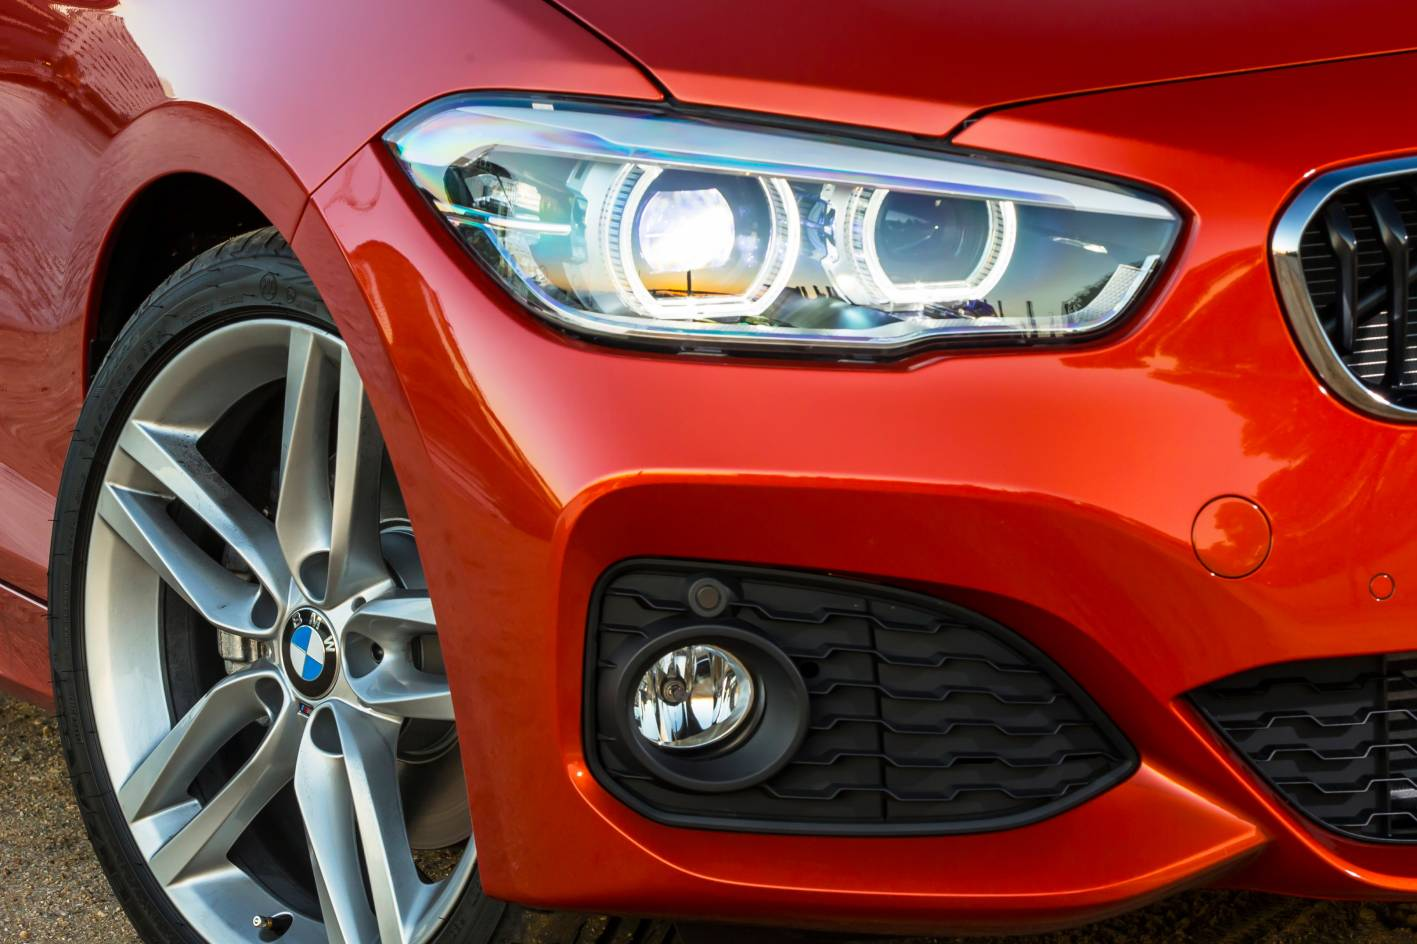 2015 BMW 1 series - First Drive